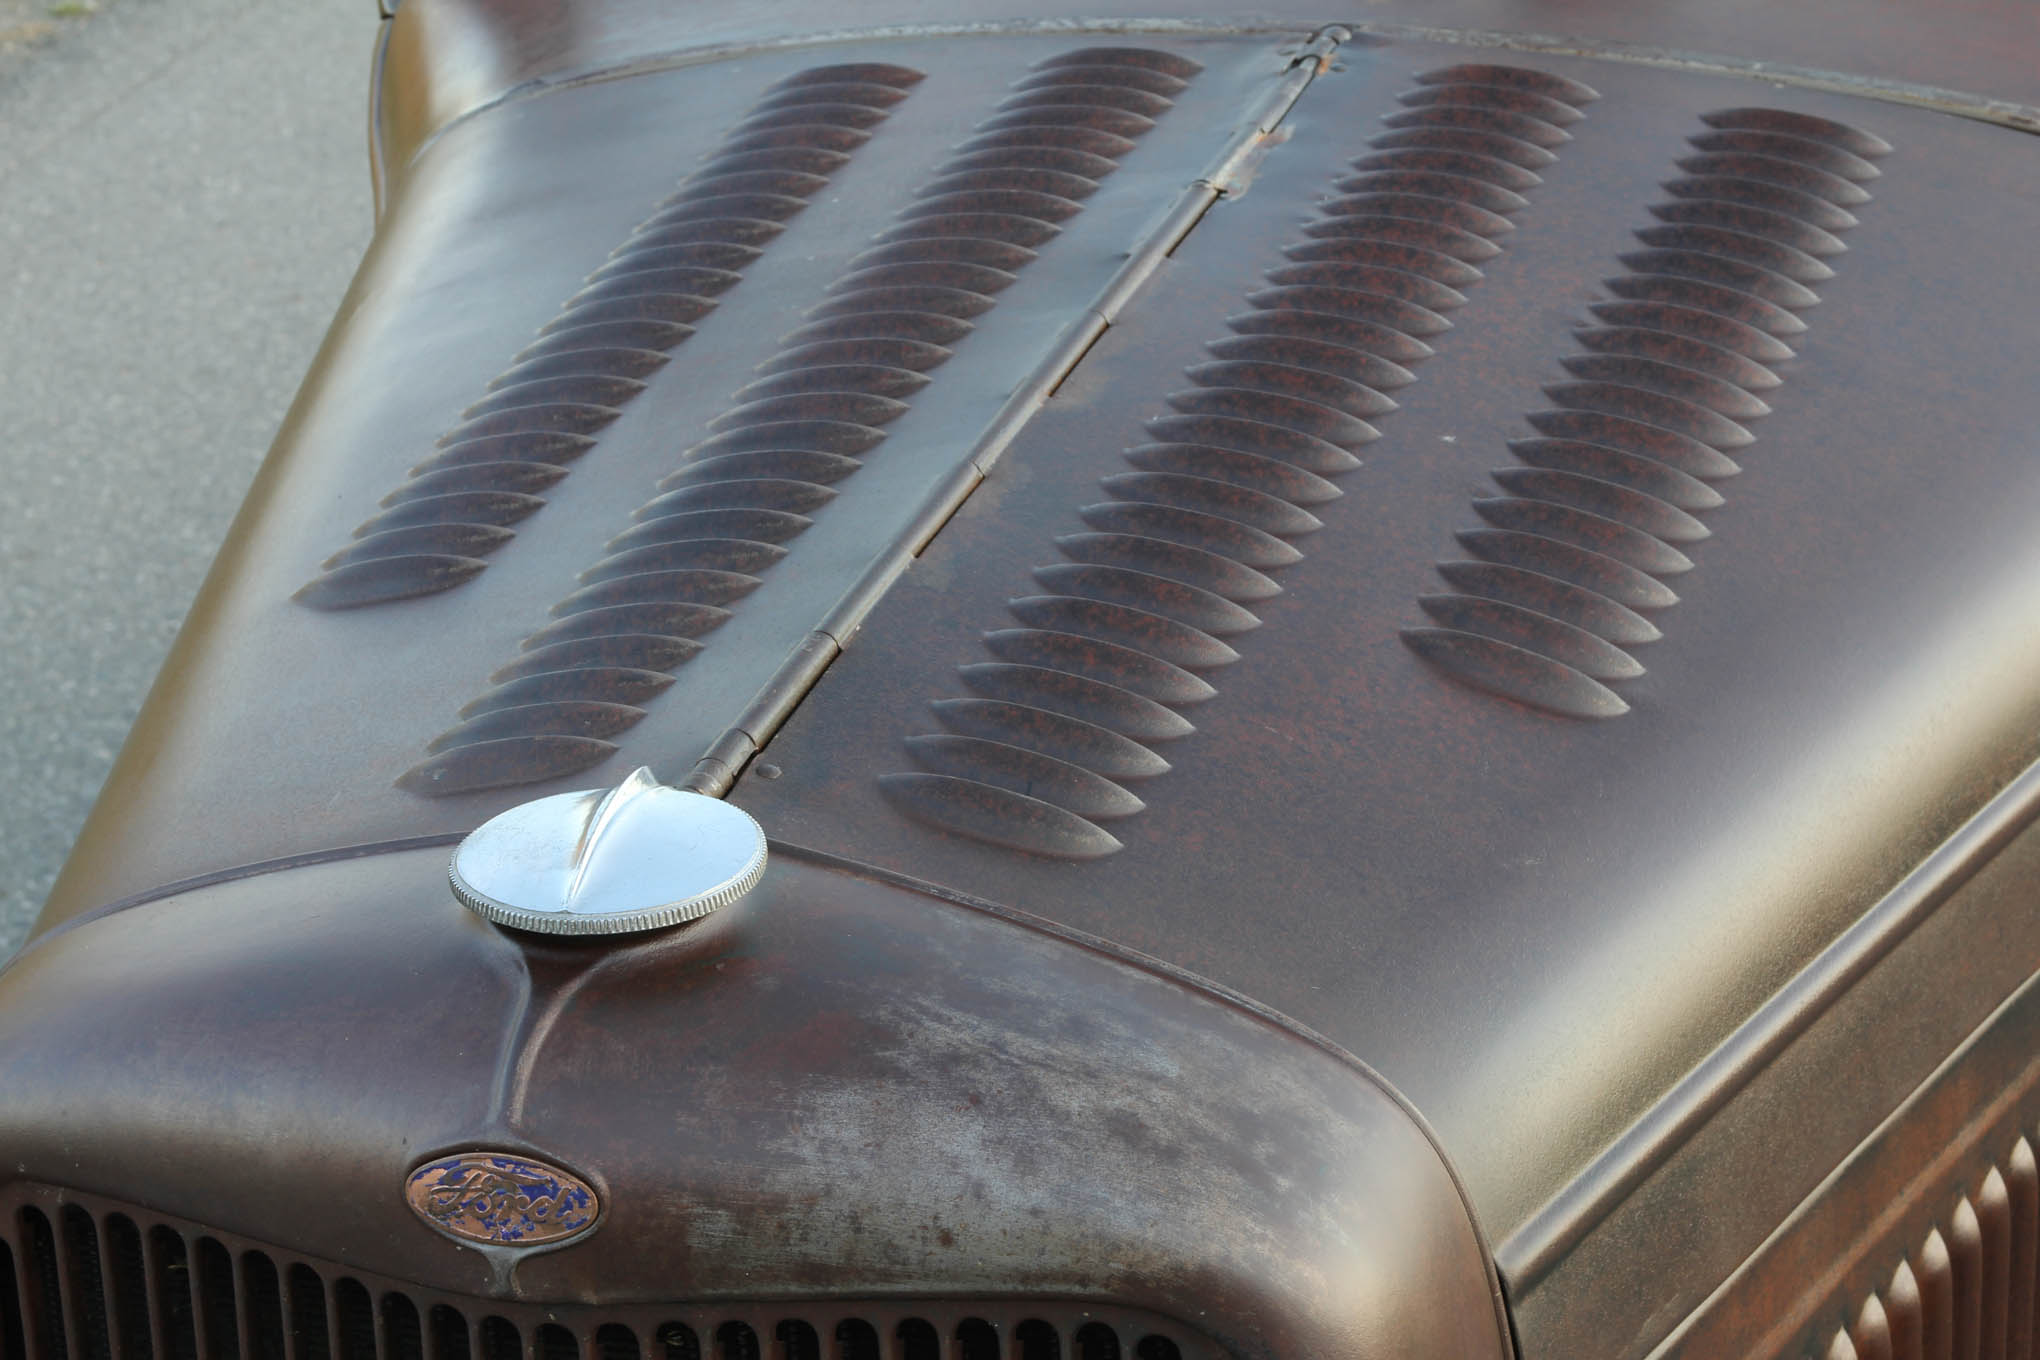 A few dozen louvers adorn both the hood and decklid. You can recognize the '32 shell as a commercial unit, as it lacks the fancy chrome-plated die-casting that joins the radiator cap to the Ford script. The grille shell came from California, while Steve found the complete hood in British Columbia.